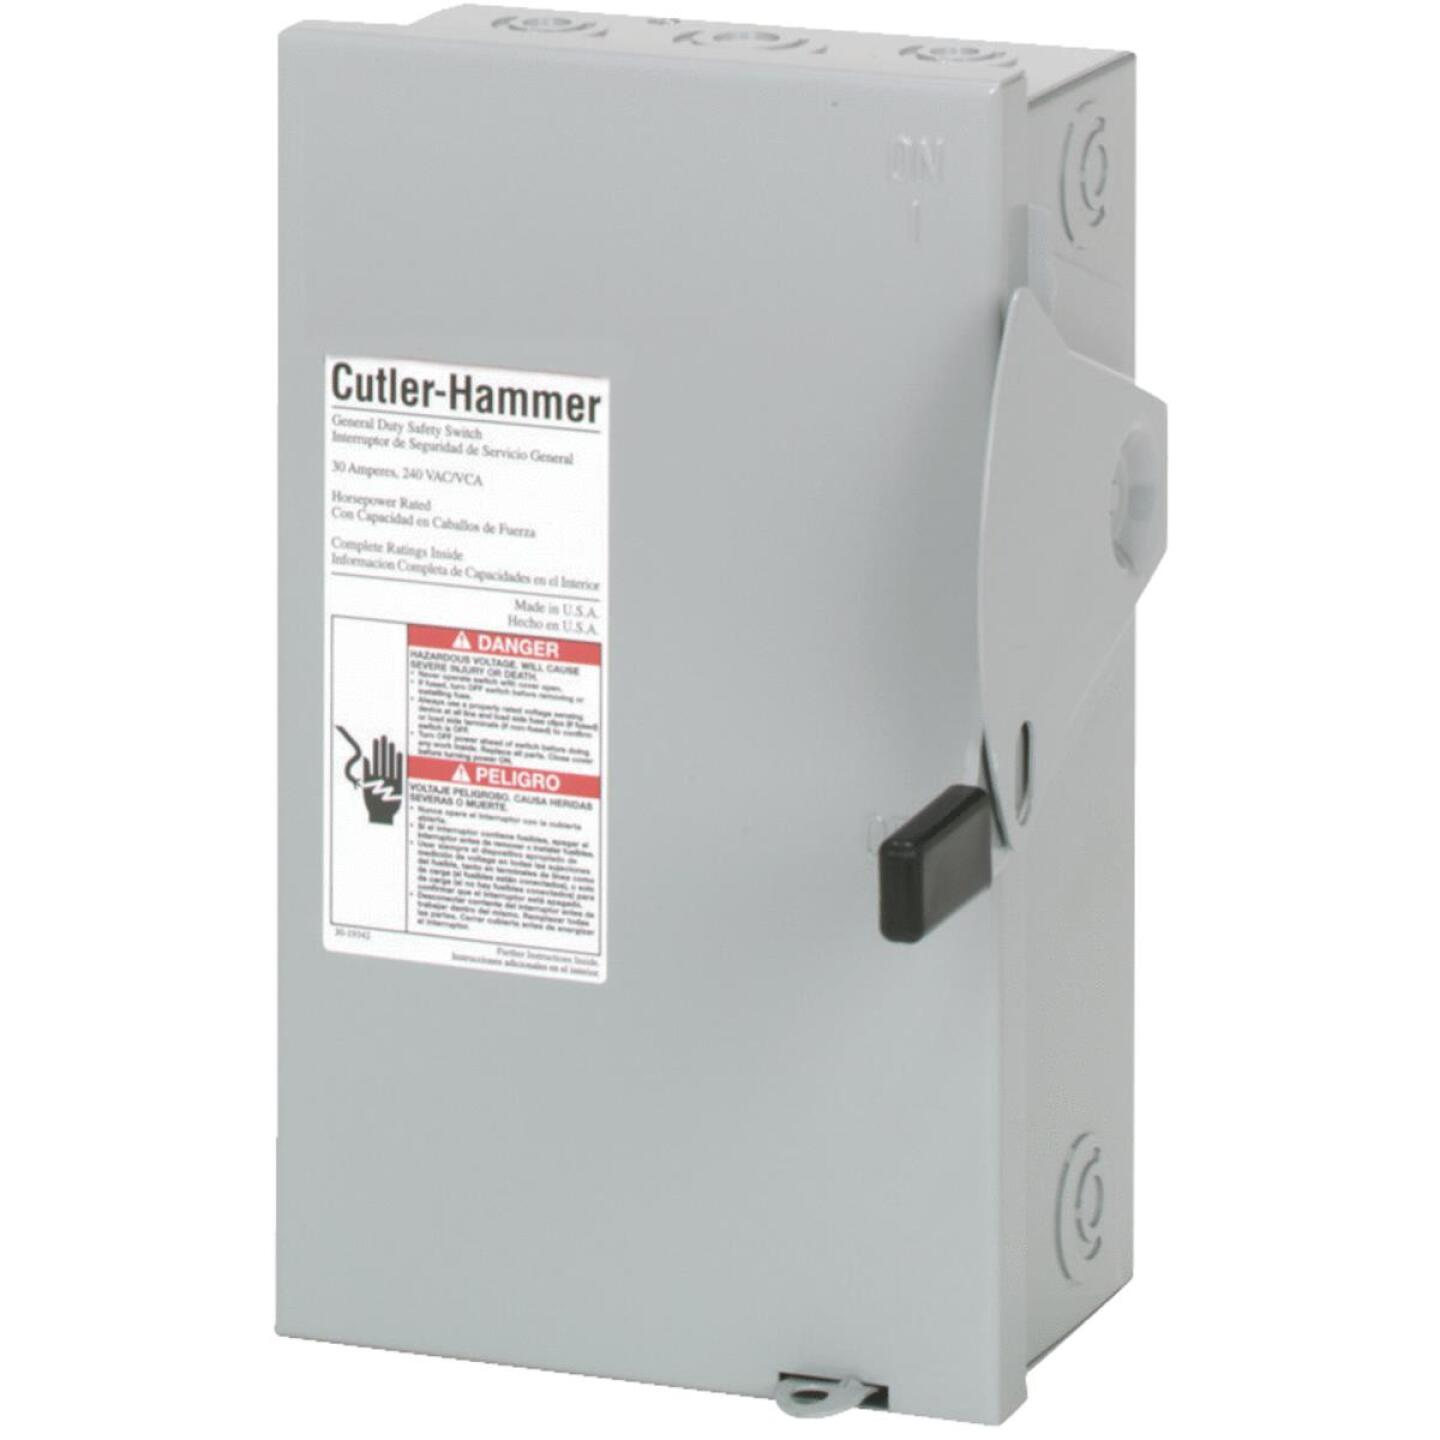 Eaton 30A DG Series Indoor General-Duty Safety Switch Image 1